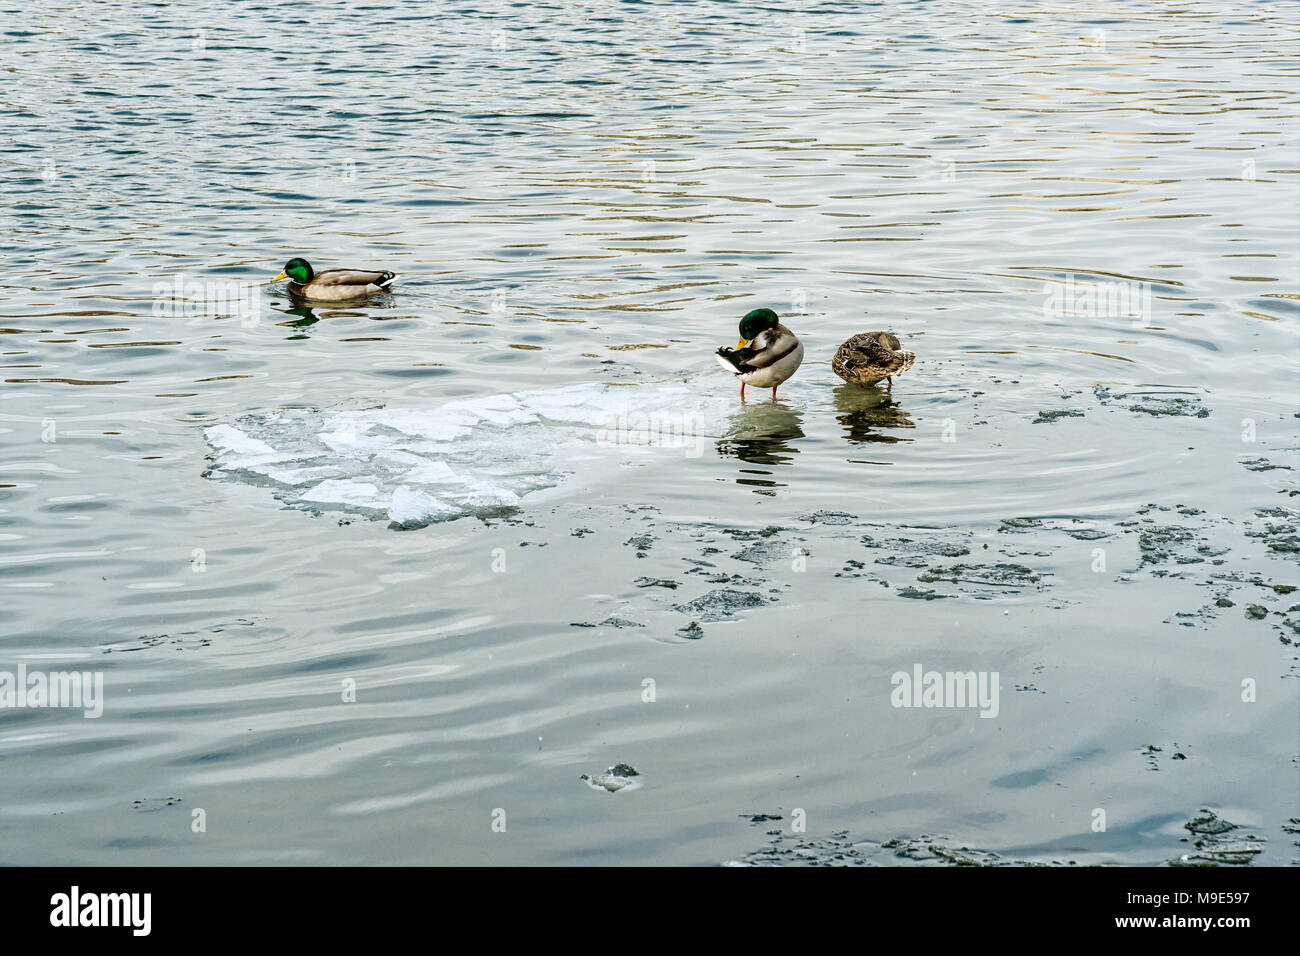 Duck In A Plate Stock Photos & Duck In A Plate Stock Images - Alamy